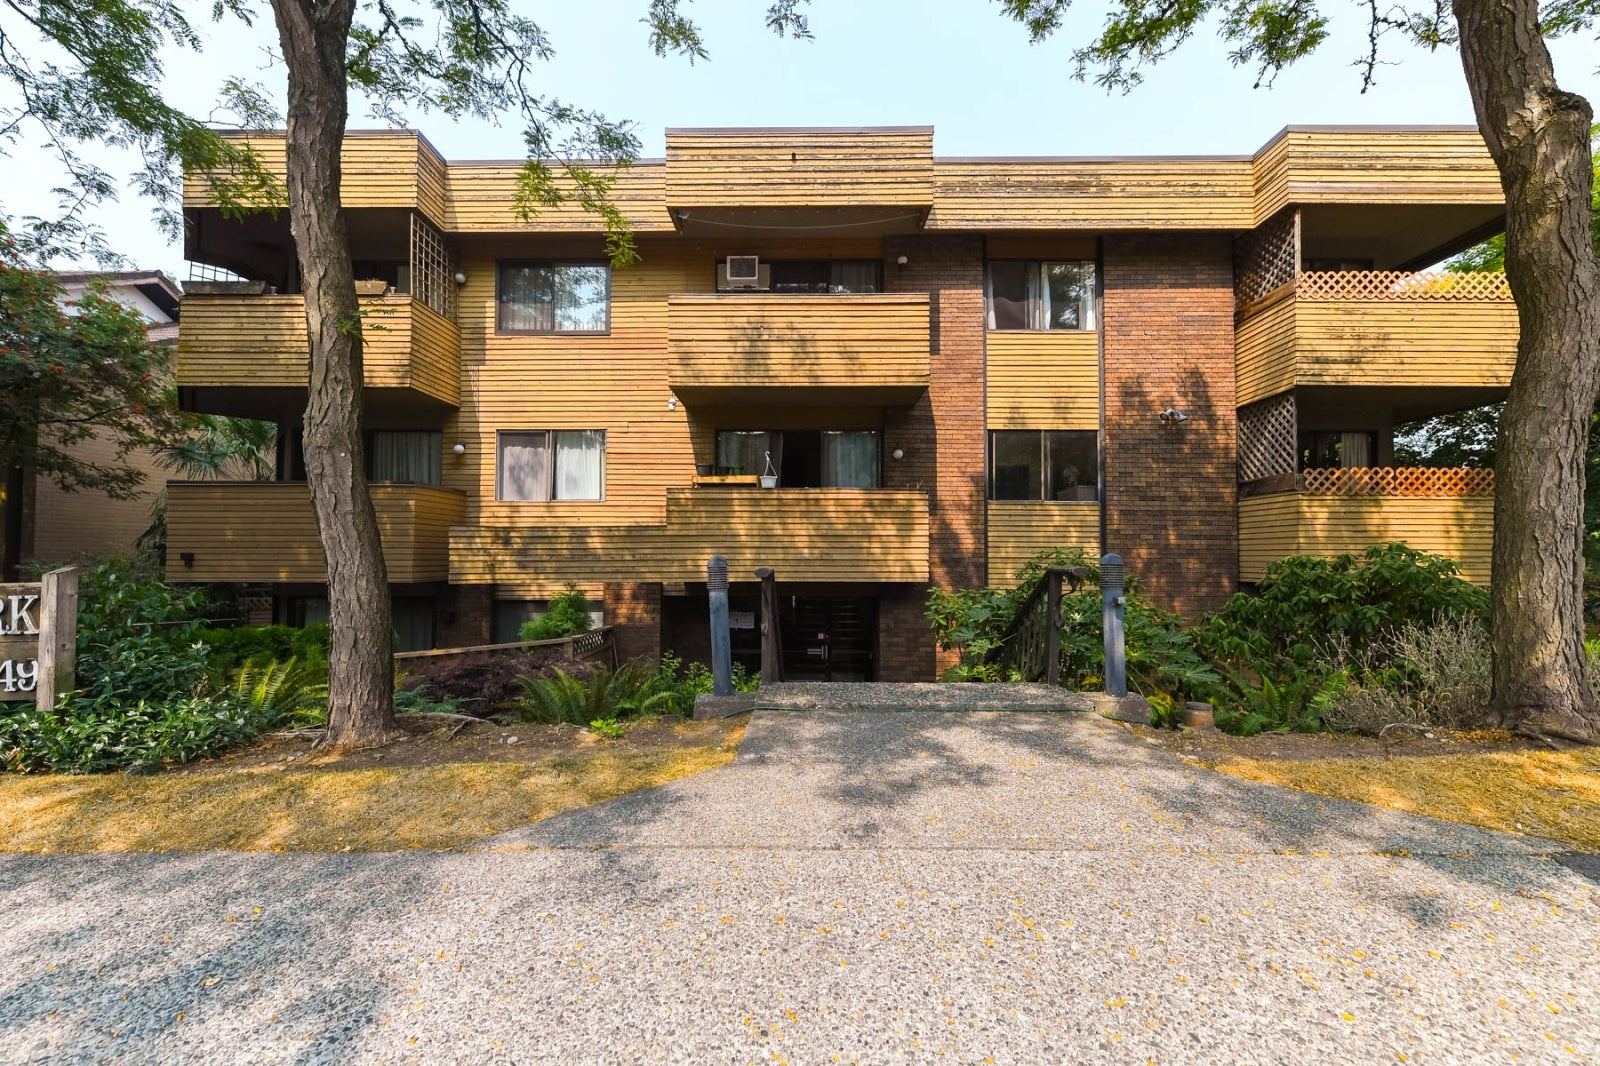 106 349 E 6TH AVENUE - Mount Pleasant VE Apartment/Condo for sale, 1 Bedroom (R2196401) #15